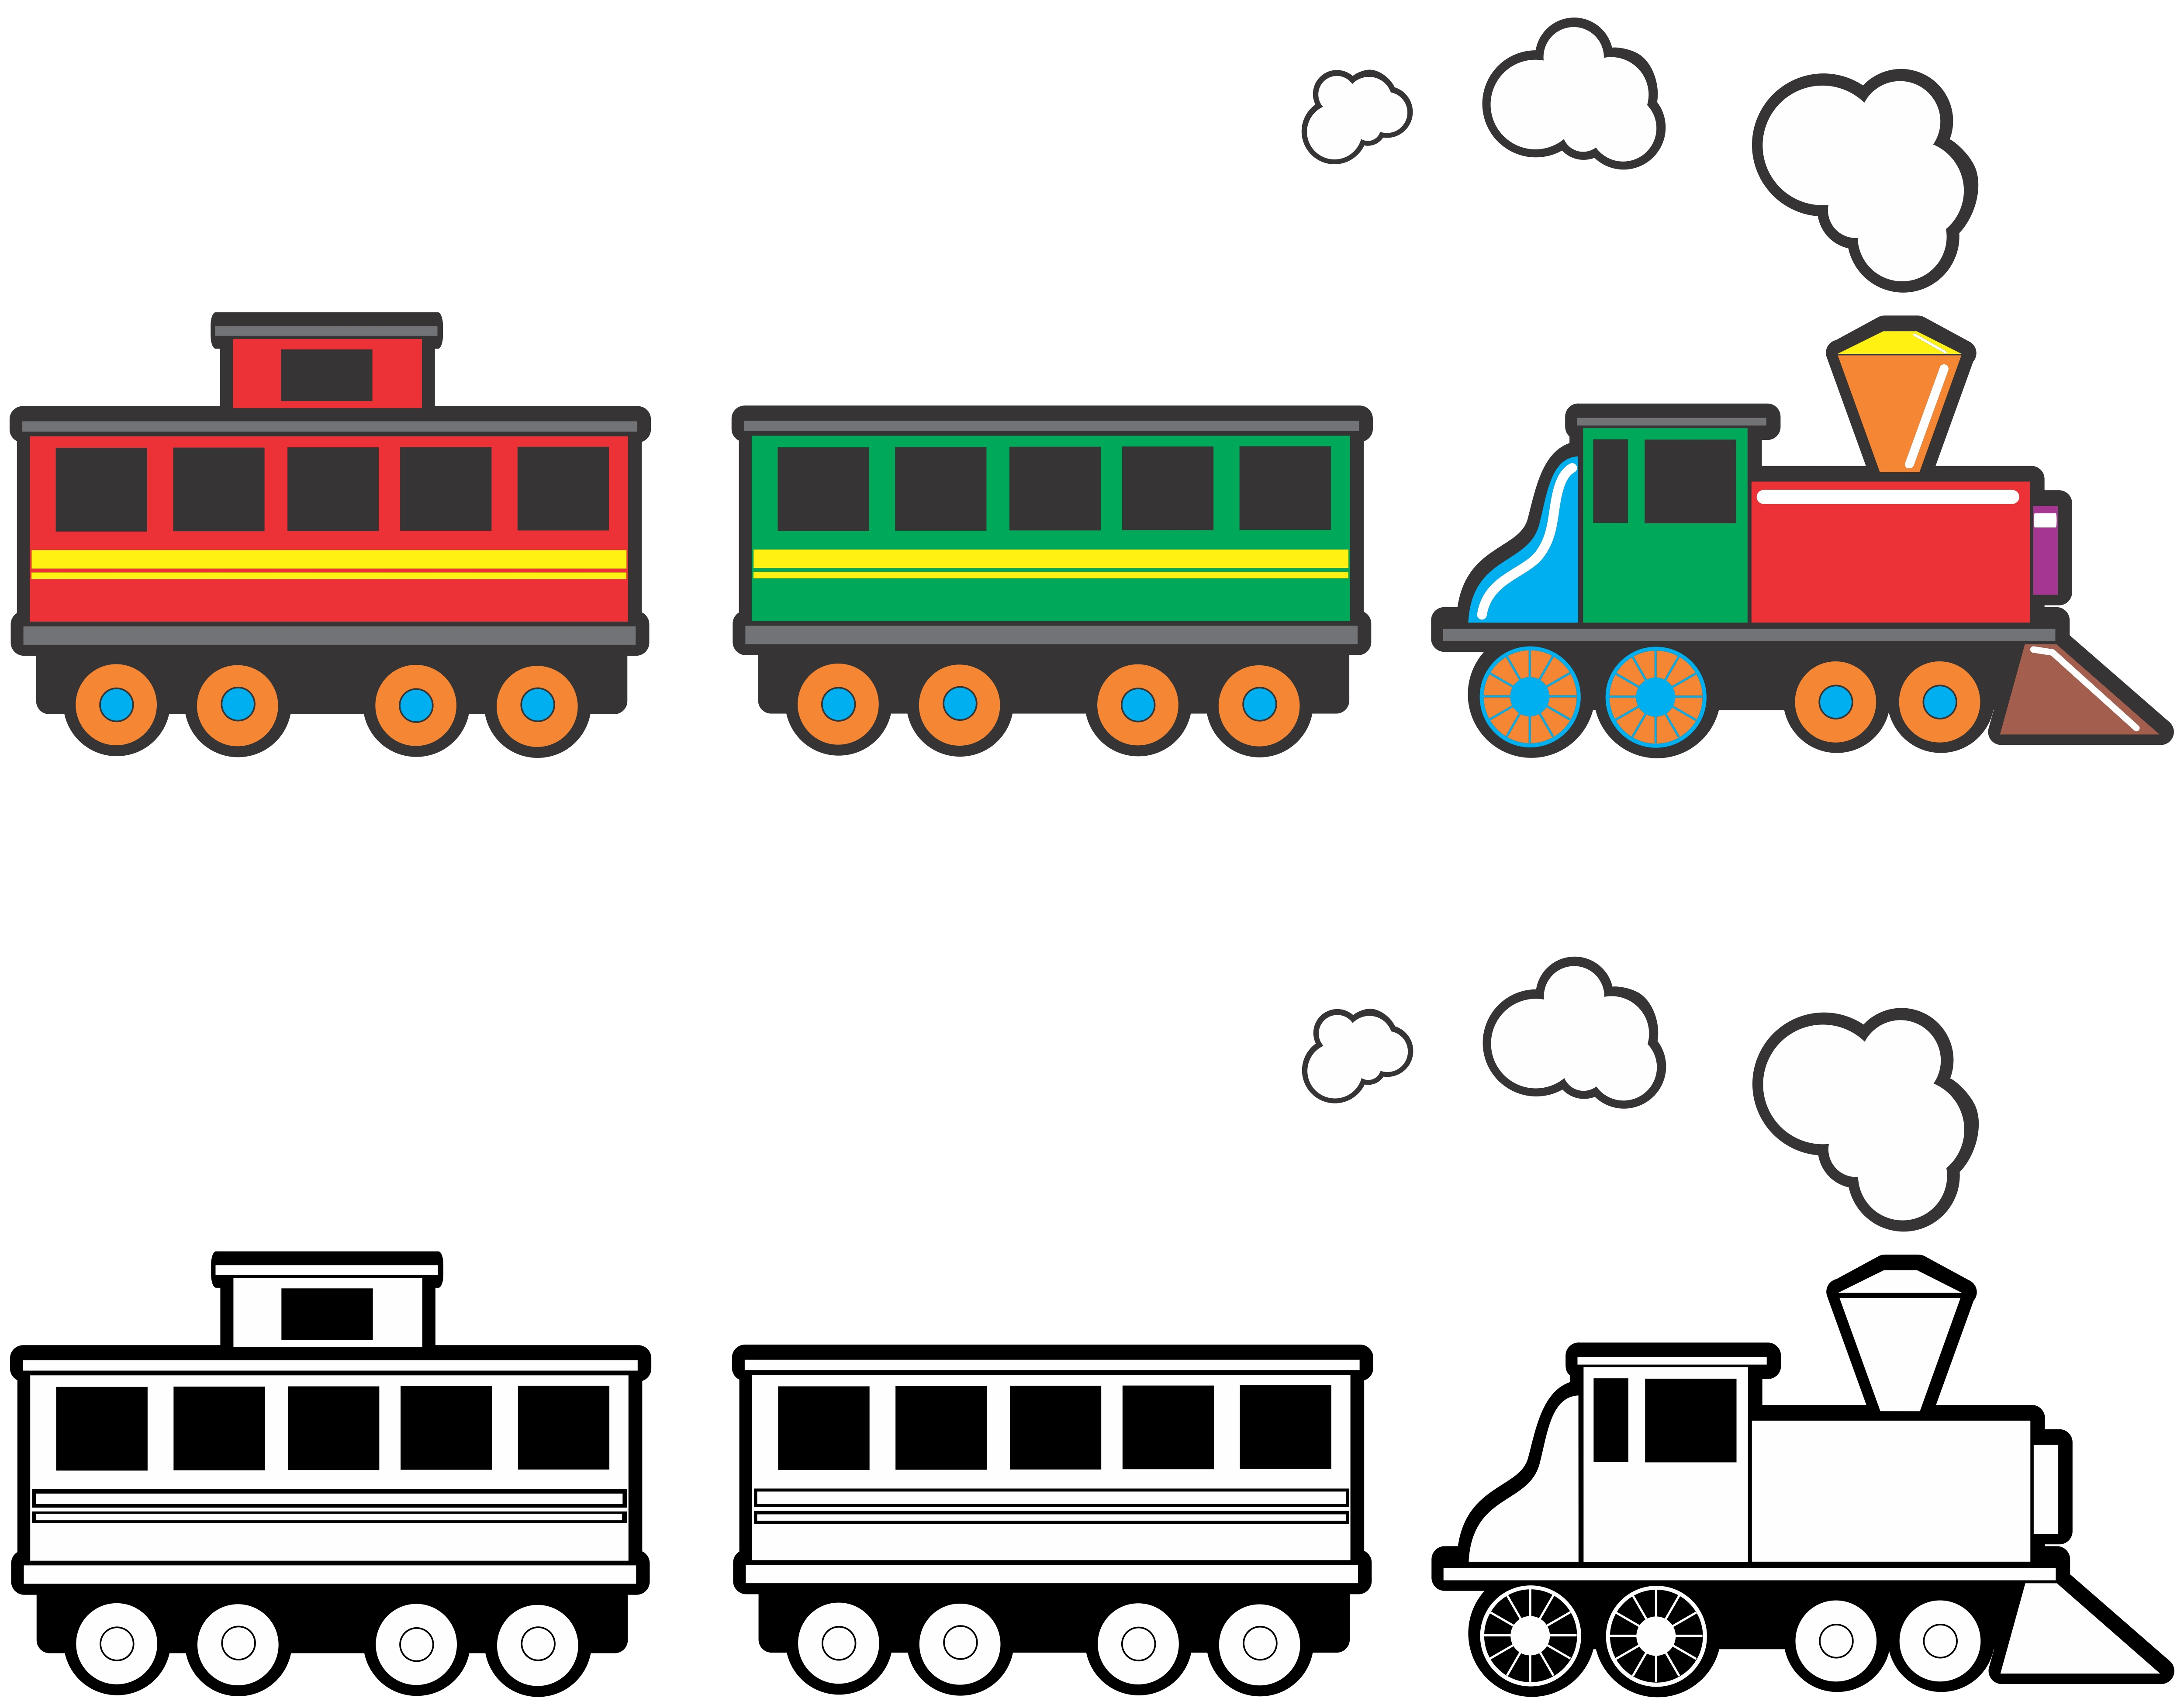 graphic royalty free Free cliparts download clip. Tracks clipart toy train